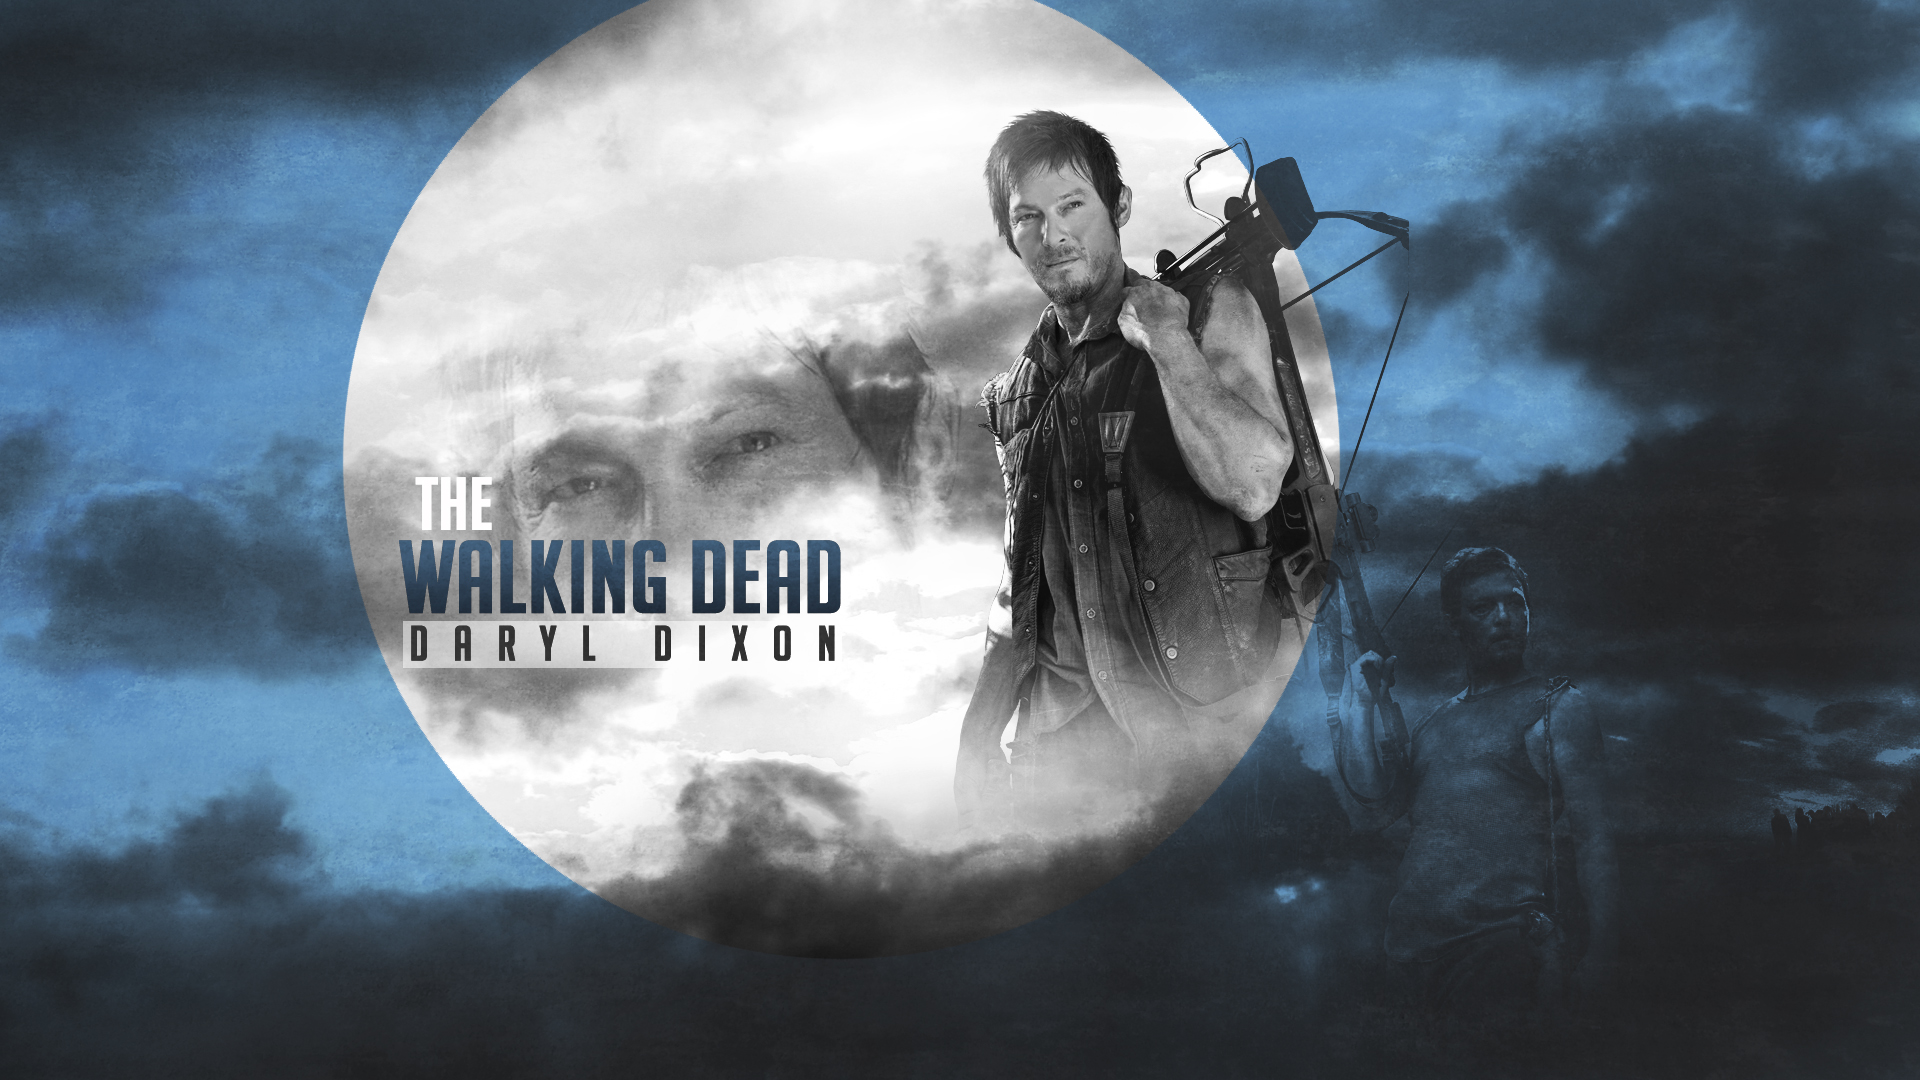 The Walking Dead Hd Wallpapers Pictures Images